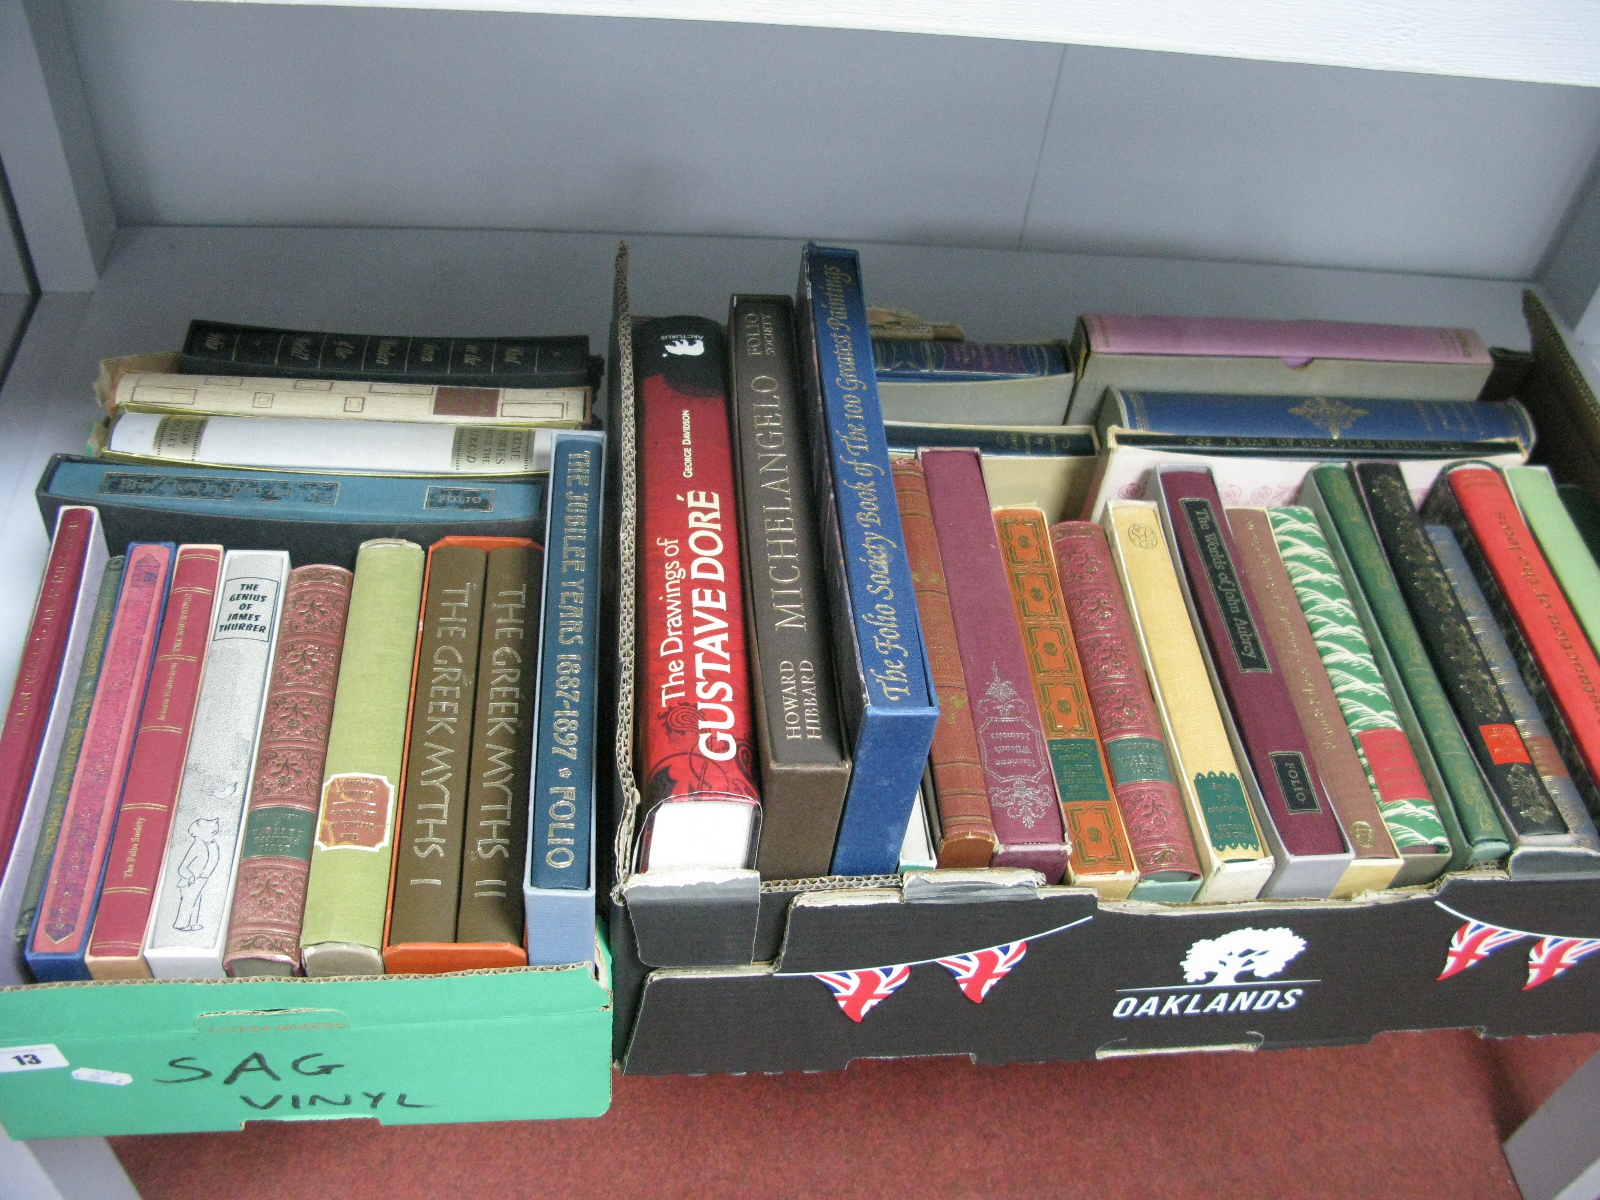 Lot 13 - Howard Hubbard - Michaelangelo, The Folio Society; plus other historical reference and general